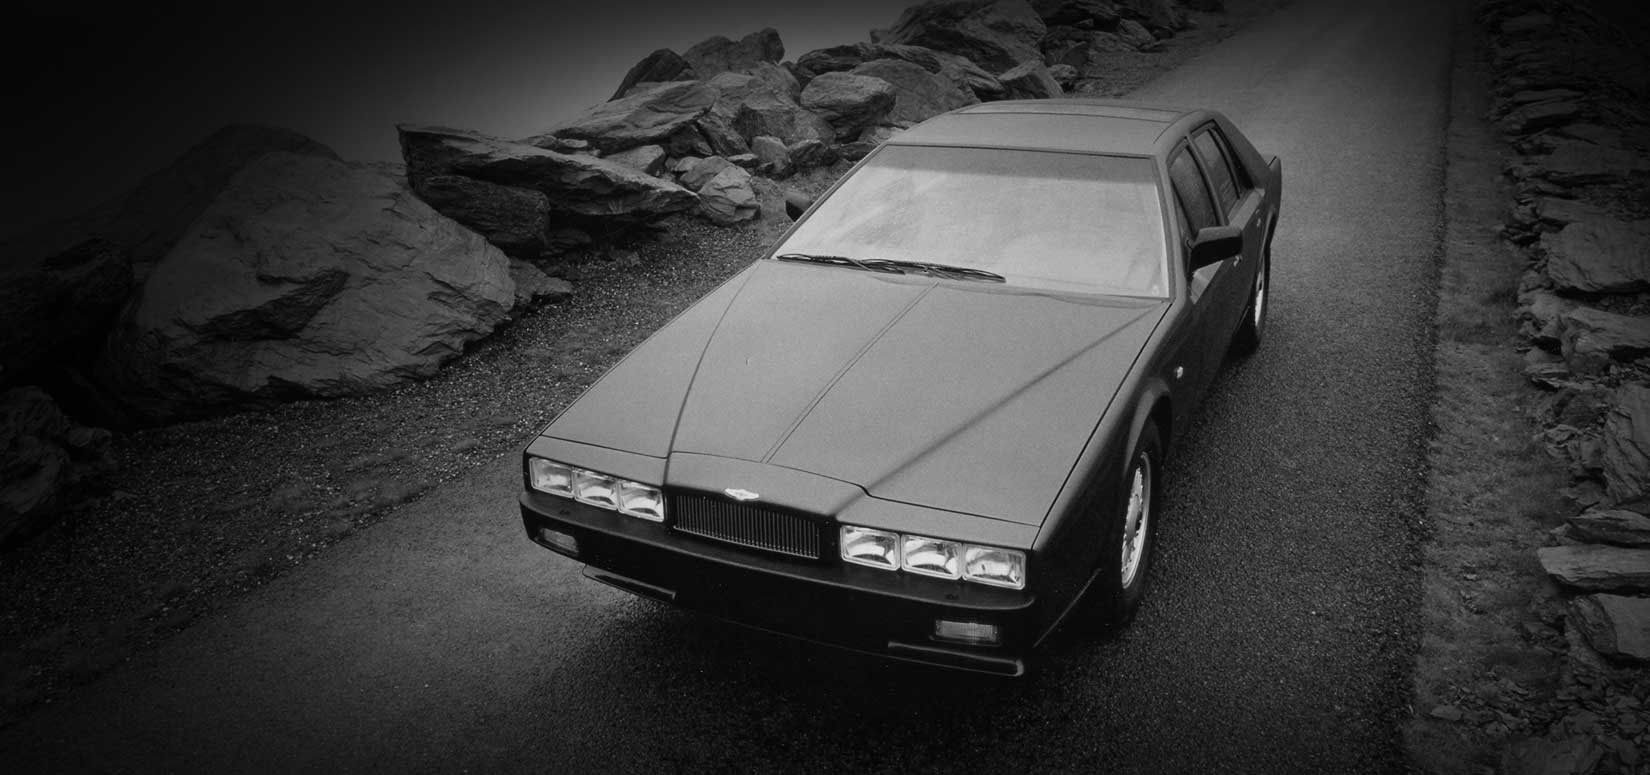 aston martin lagonda i 1991 wallpaper